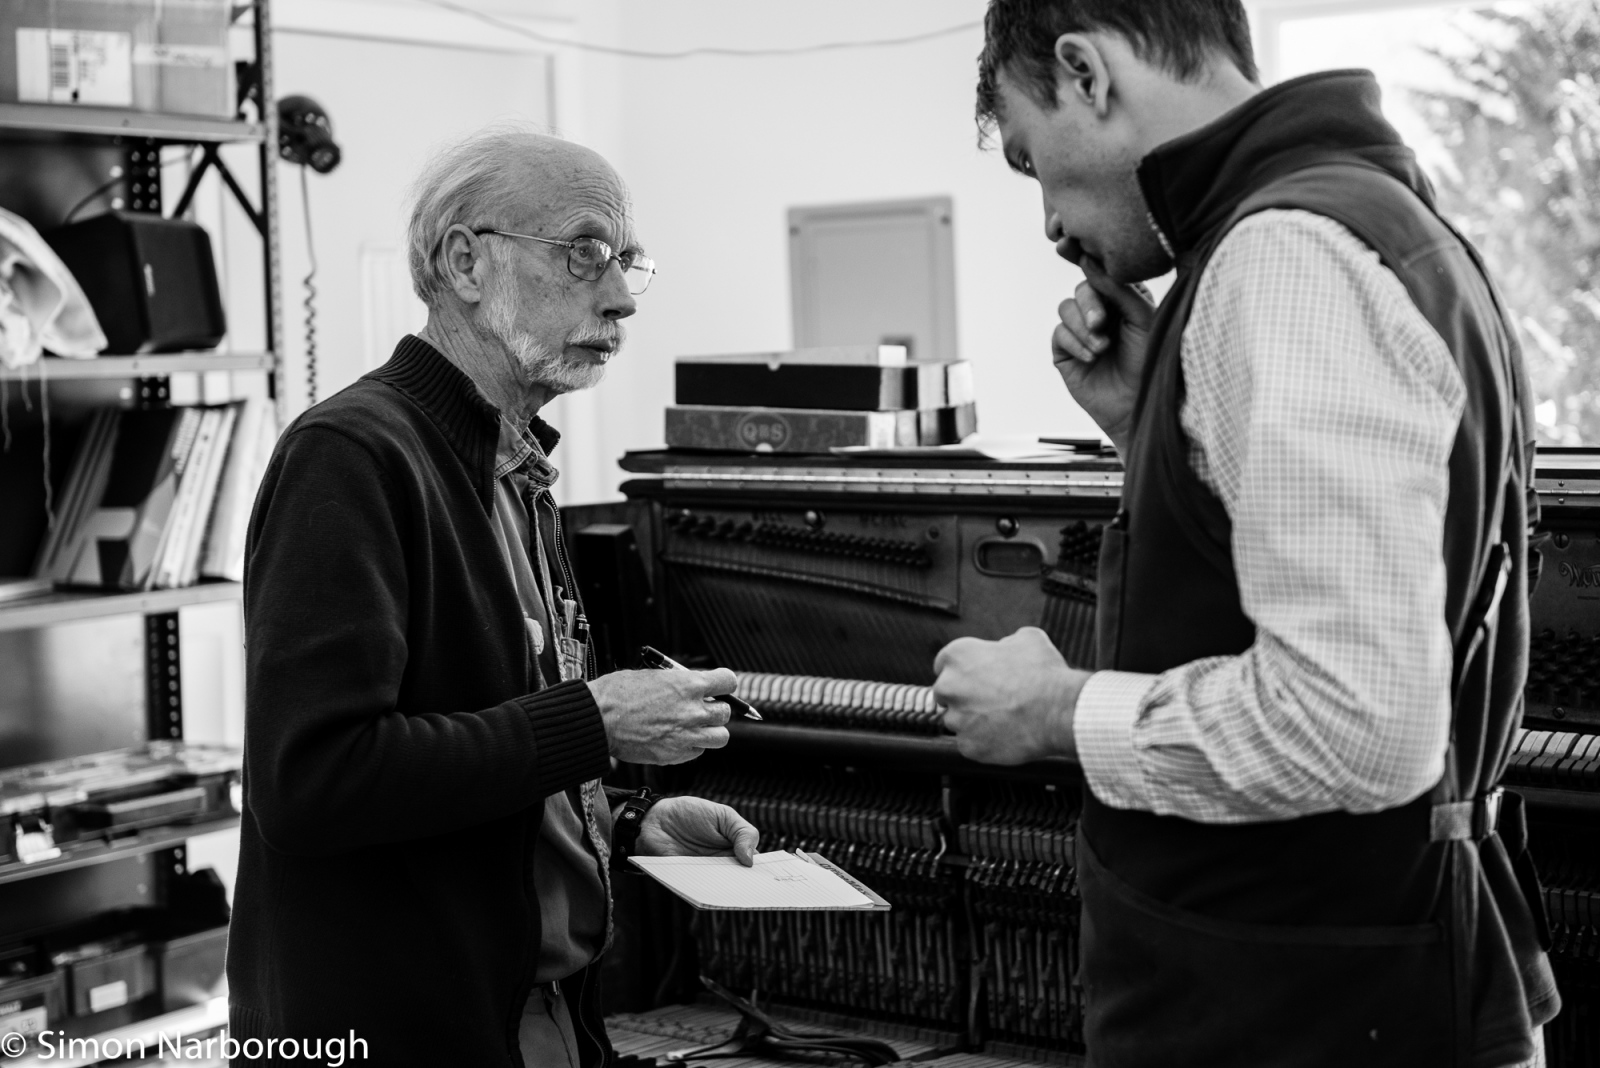 Joseph and Nate work together as a team and plan the work for the day ahead. Joseph has amassed over 40 years of knowledge and experience with this veteran instruments.